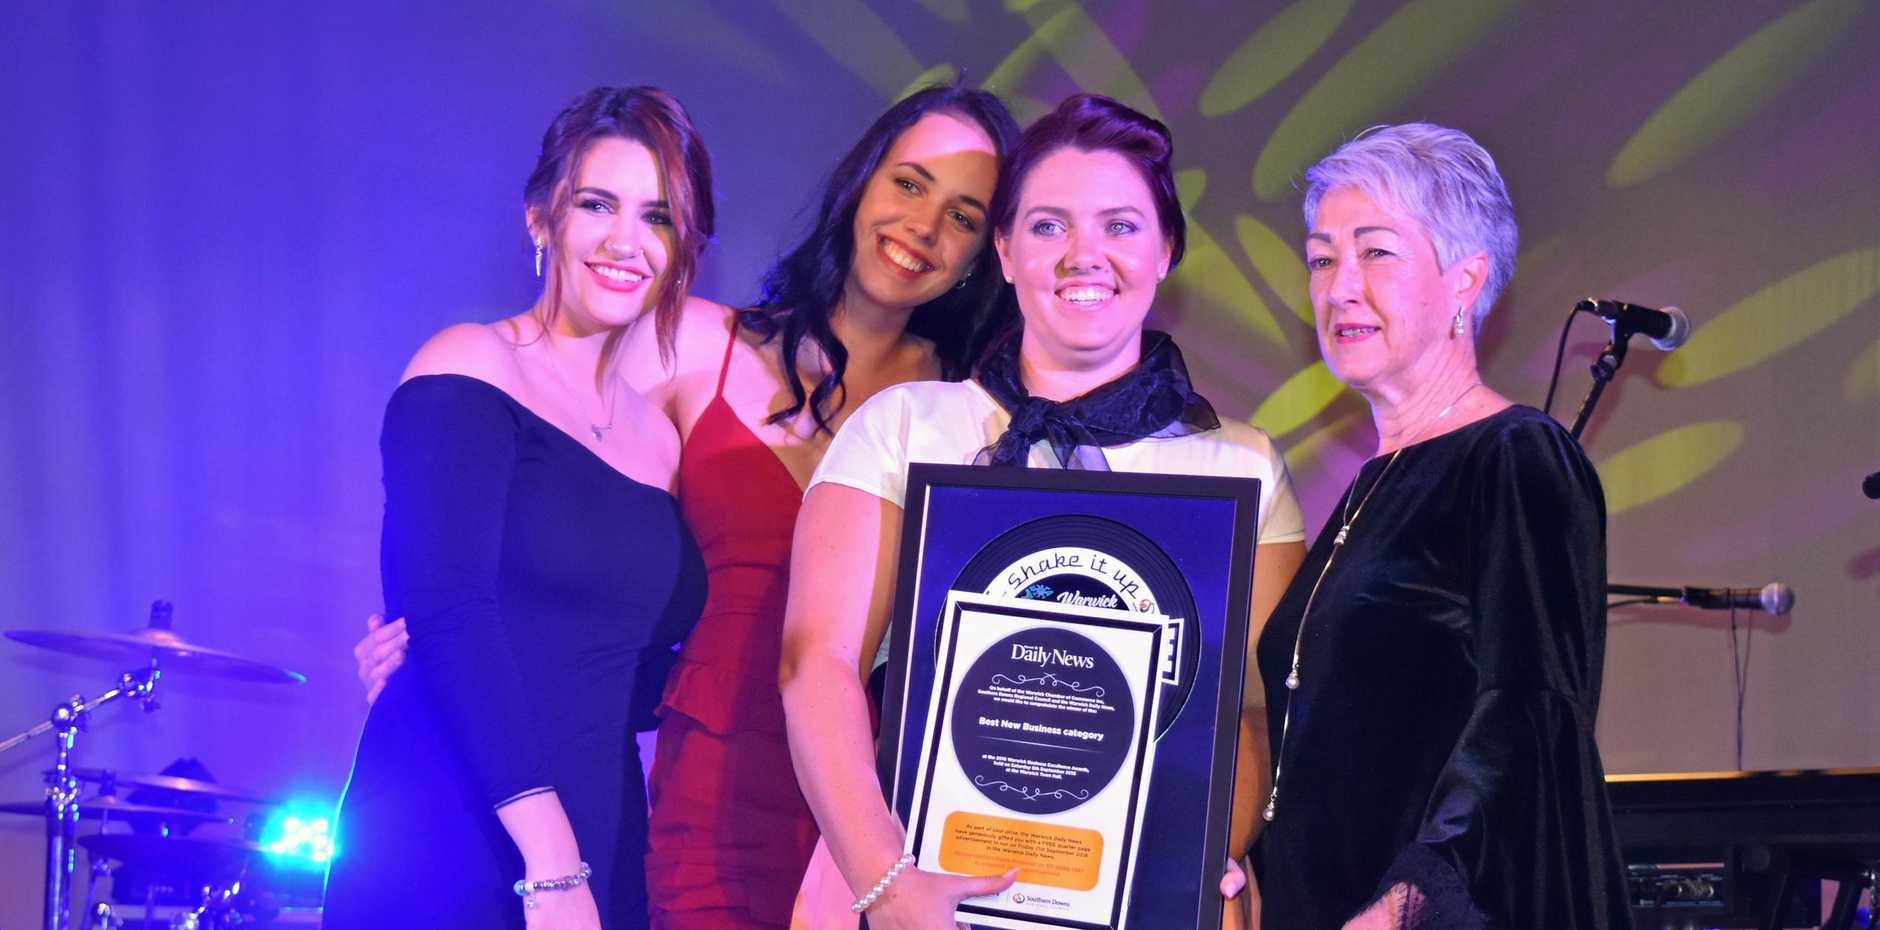 Best New Business: Hair Kreations owner Belinda Benz and staff Bree Clark, Brooke Walker, with presenter, Mayor Tracy Dobie